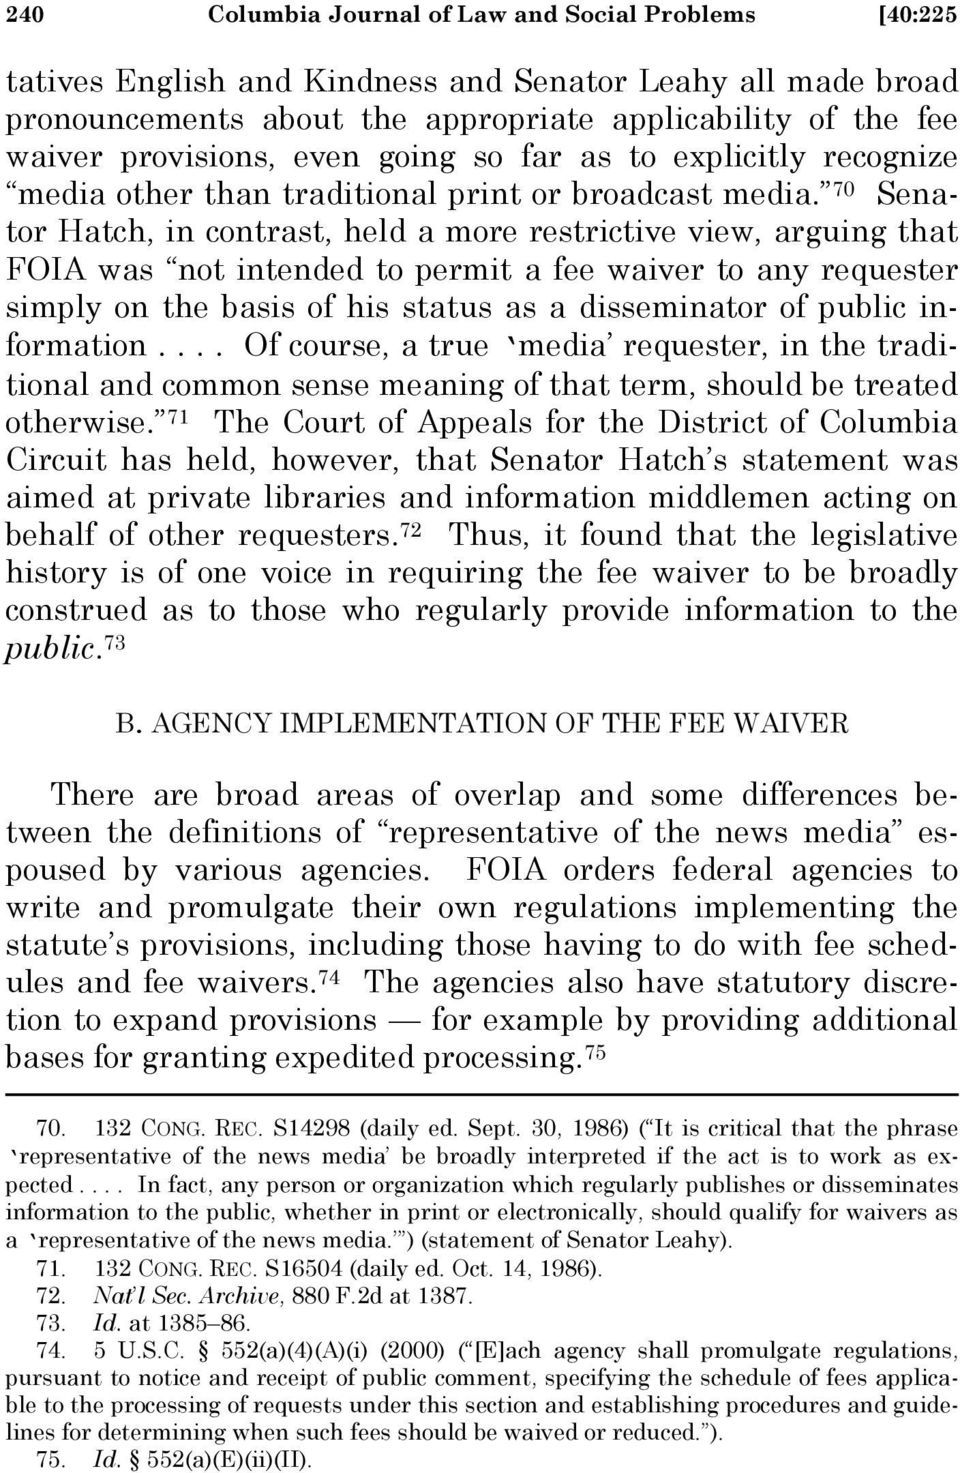 70 Senator Hatch, in contrast, held a more restrictive view, arguing that FOIA was not intended to permit a fee waiver to any requester simply on the basis of his status as a disseminator of public